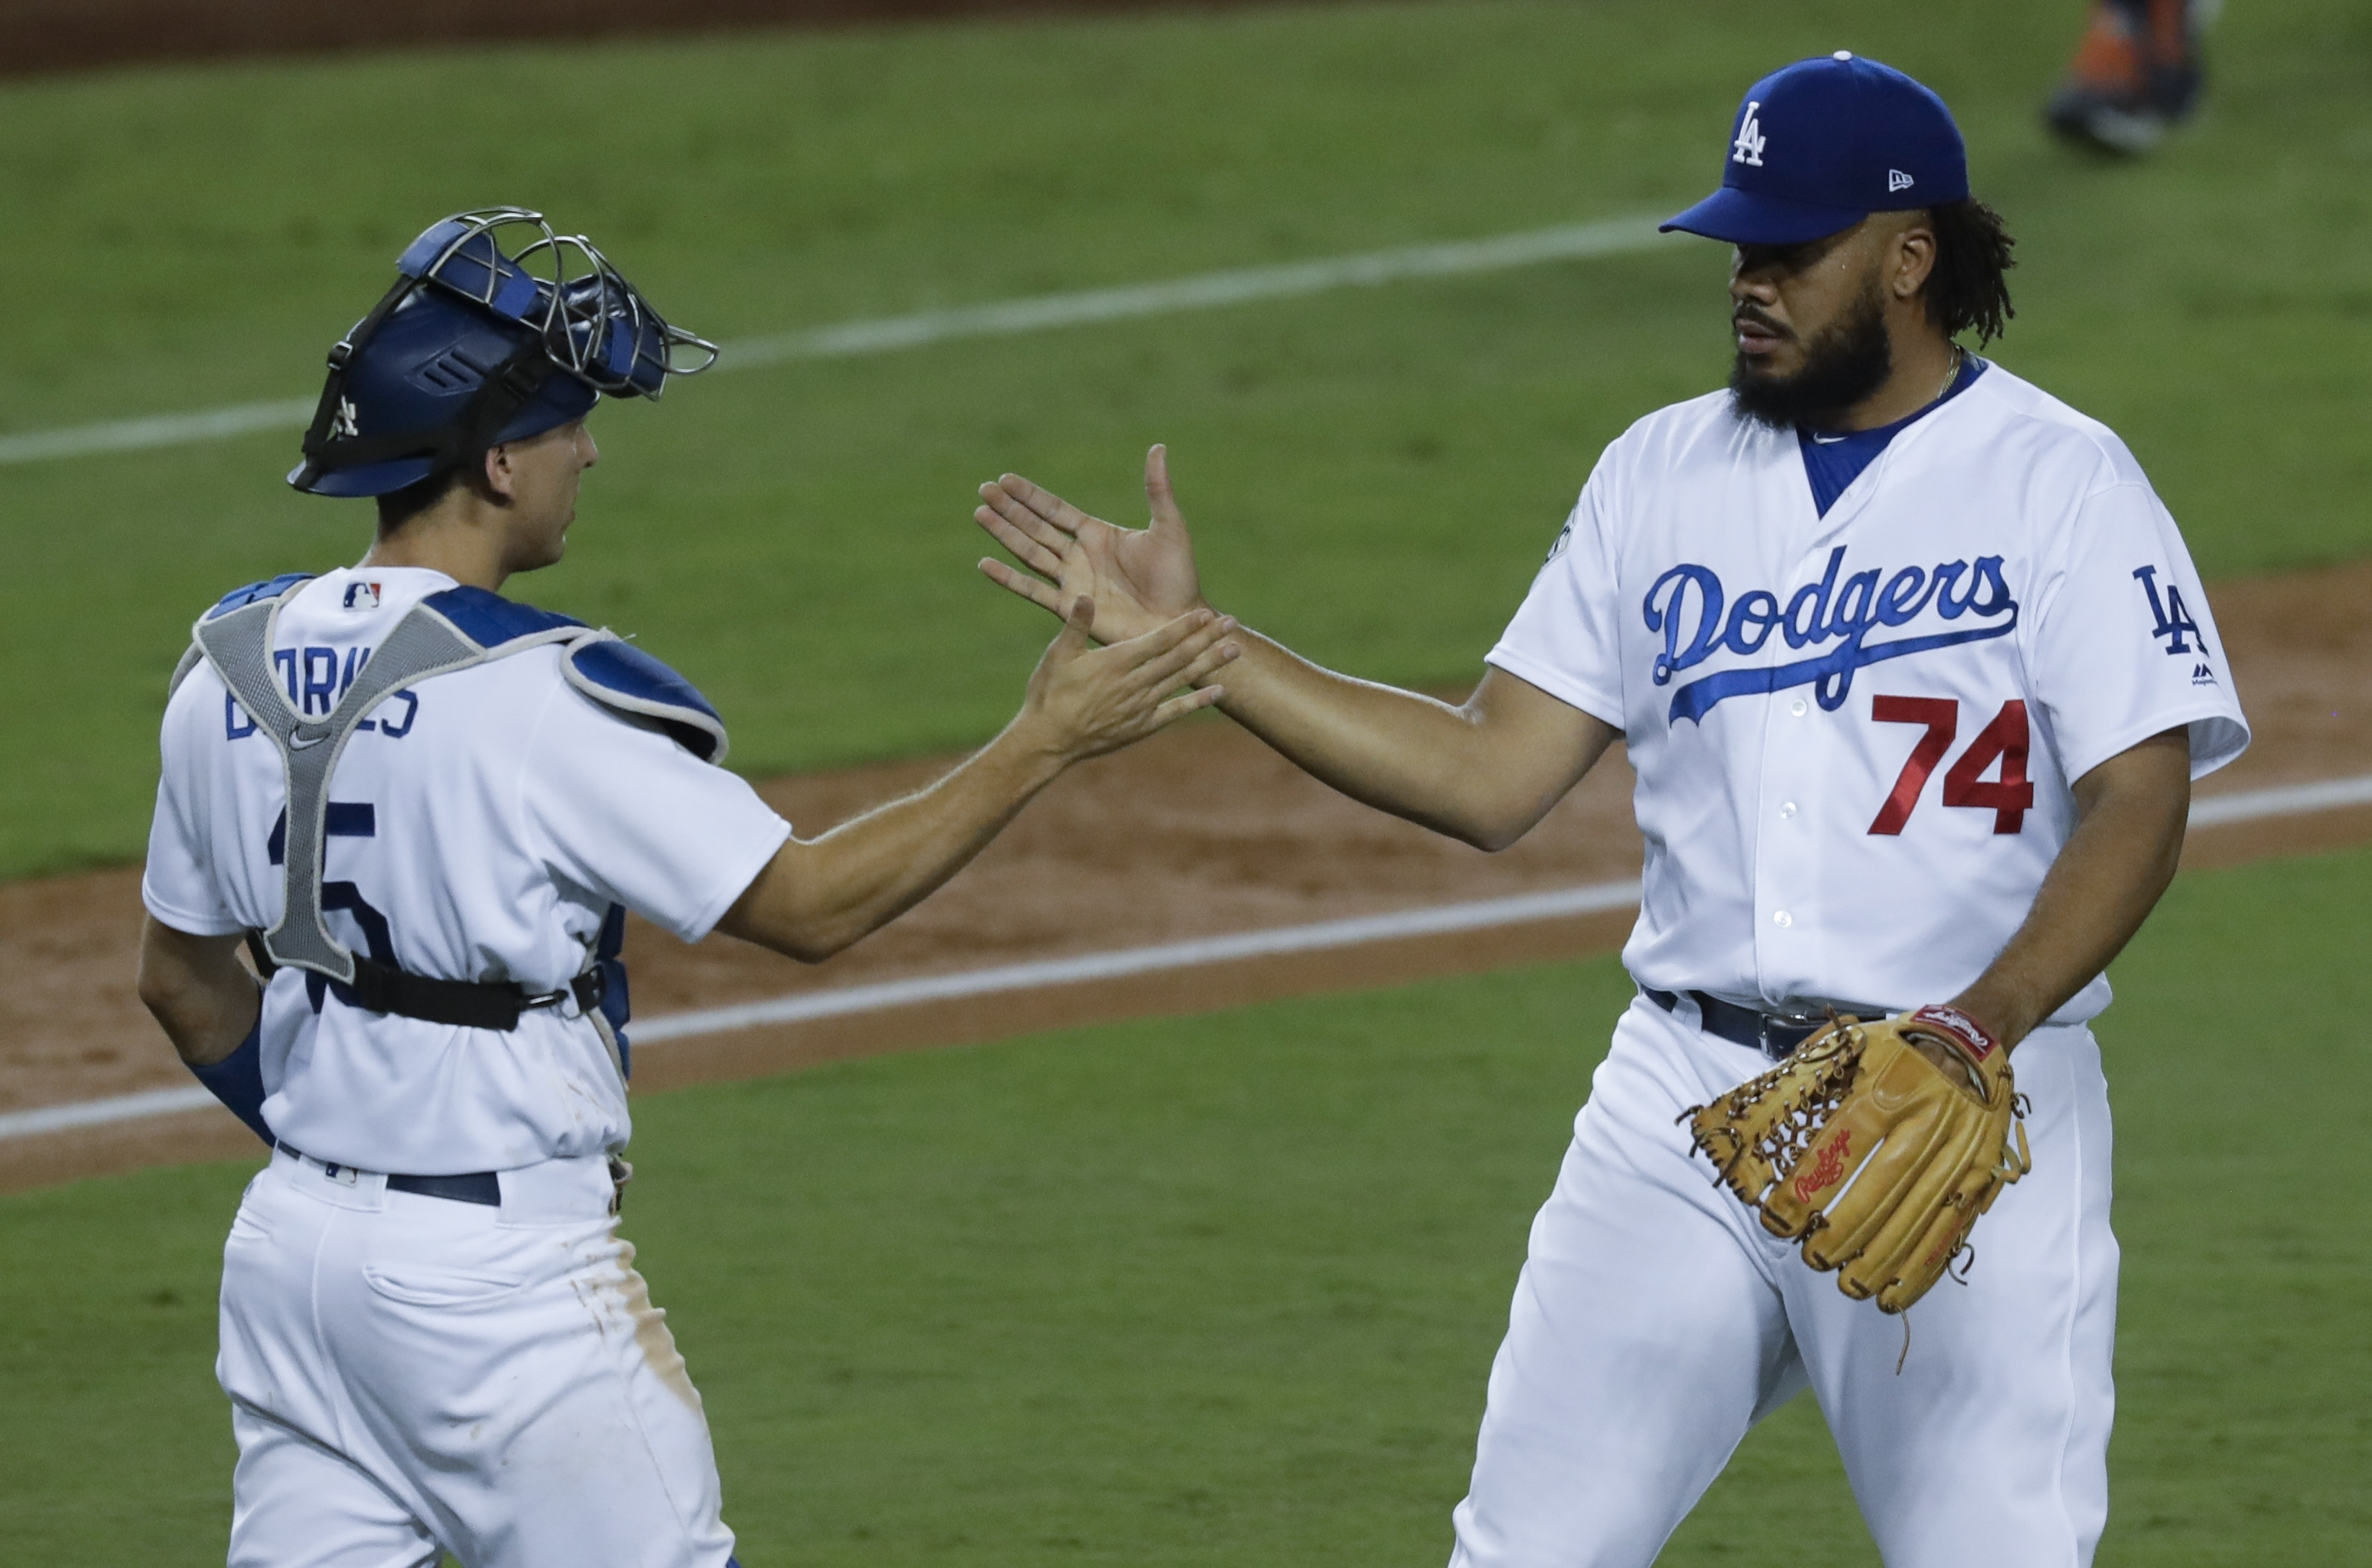 <div class='meta'><div class='origin-logo' data-origin='AP'></div><span class='caption-text' data-credit='(AP Photo/Alex Gallardo)'>Los Angeles Dodgers' Austin Barnes and Kenley Jansen celebrate after a win against the Houston Astros in Los Angeles. The Dodgers won 3-1 to take a 1-0 lead in the series.</span></div>